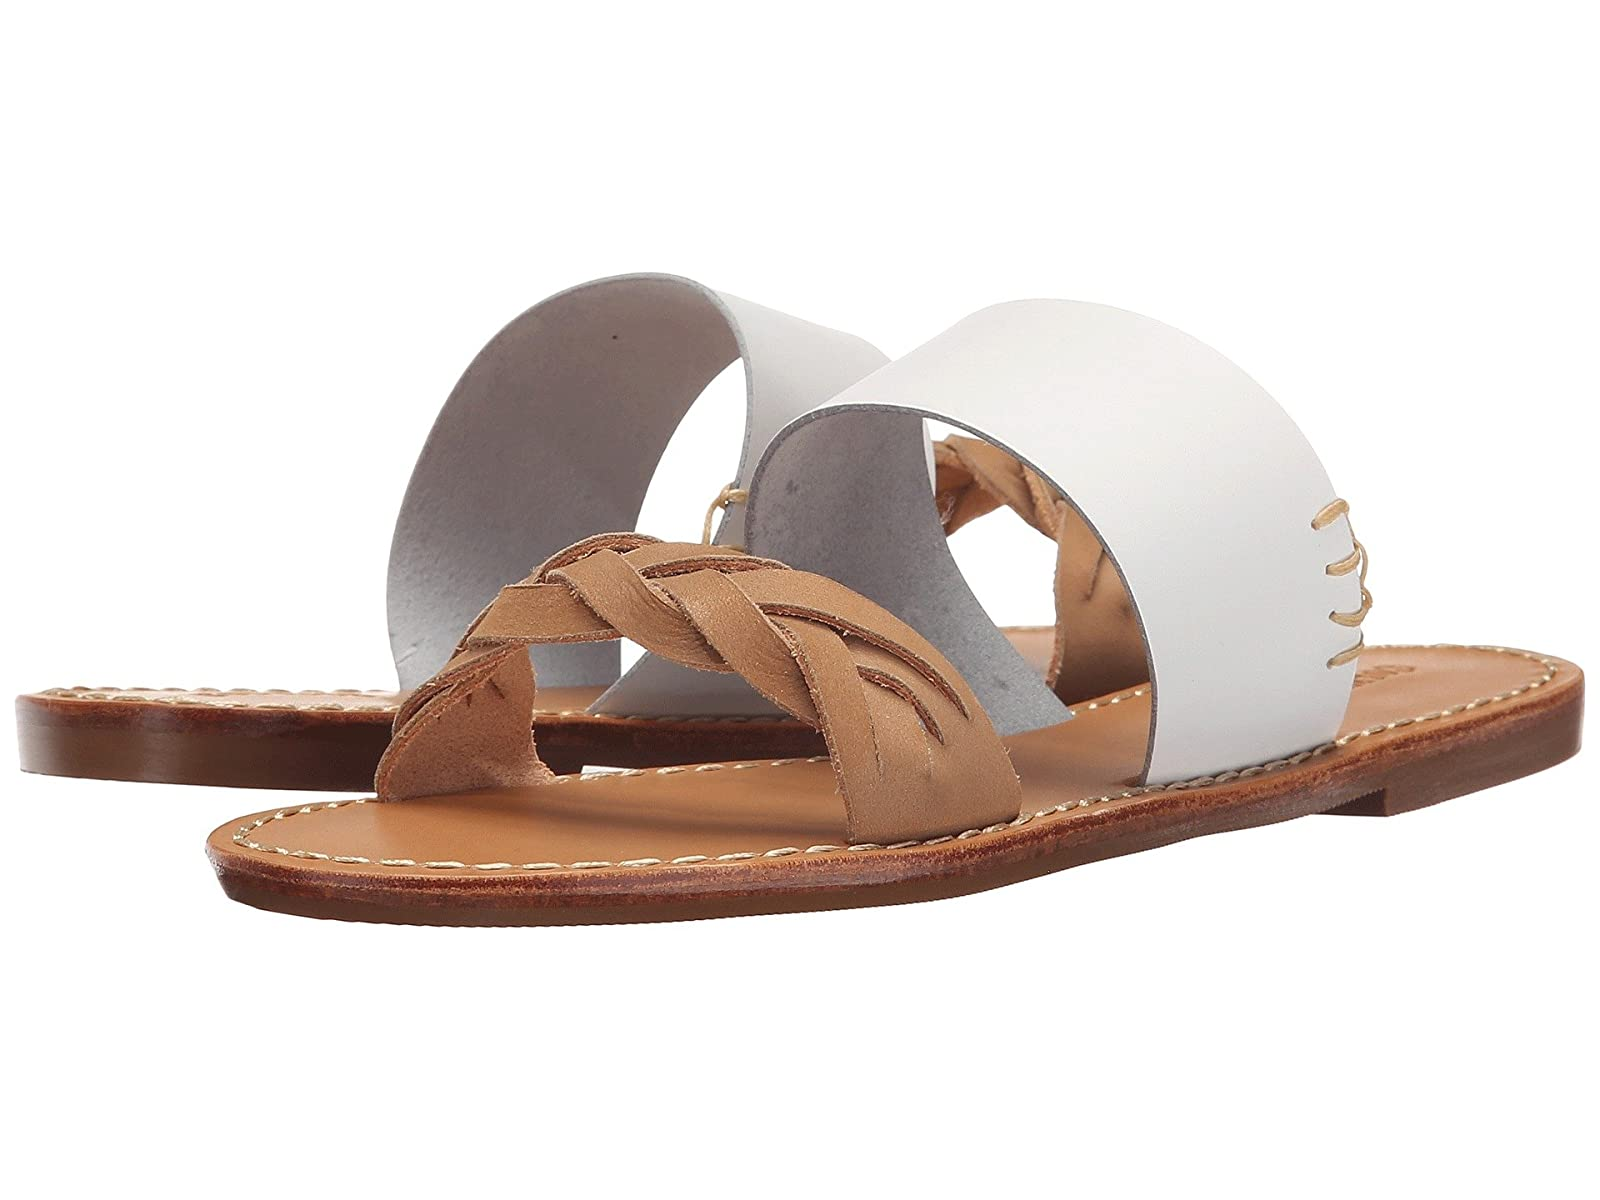 Soludos Braided Slide SandalAtmospheric grades have affordable shoes